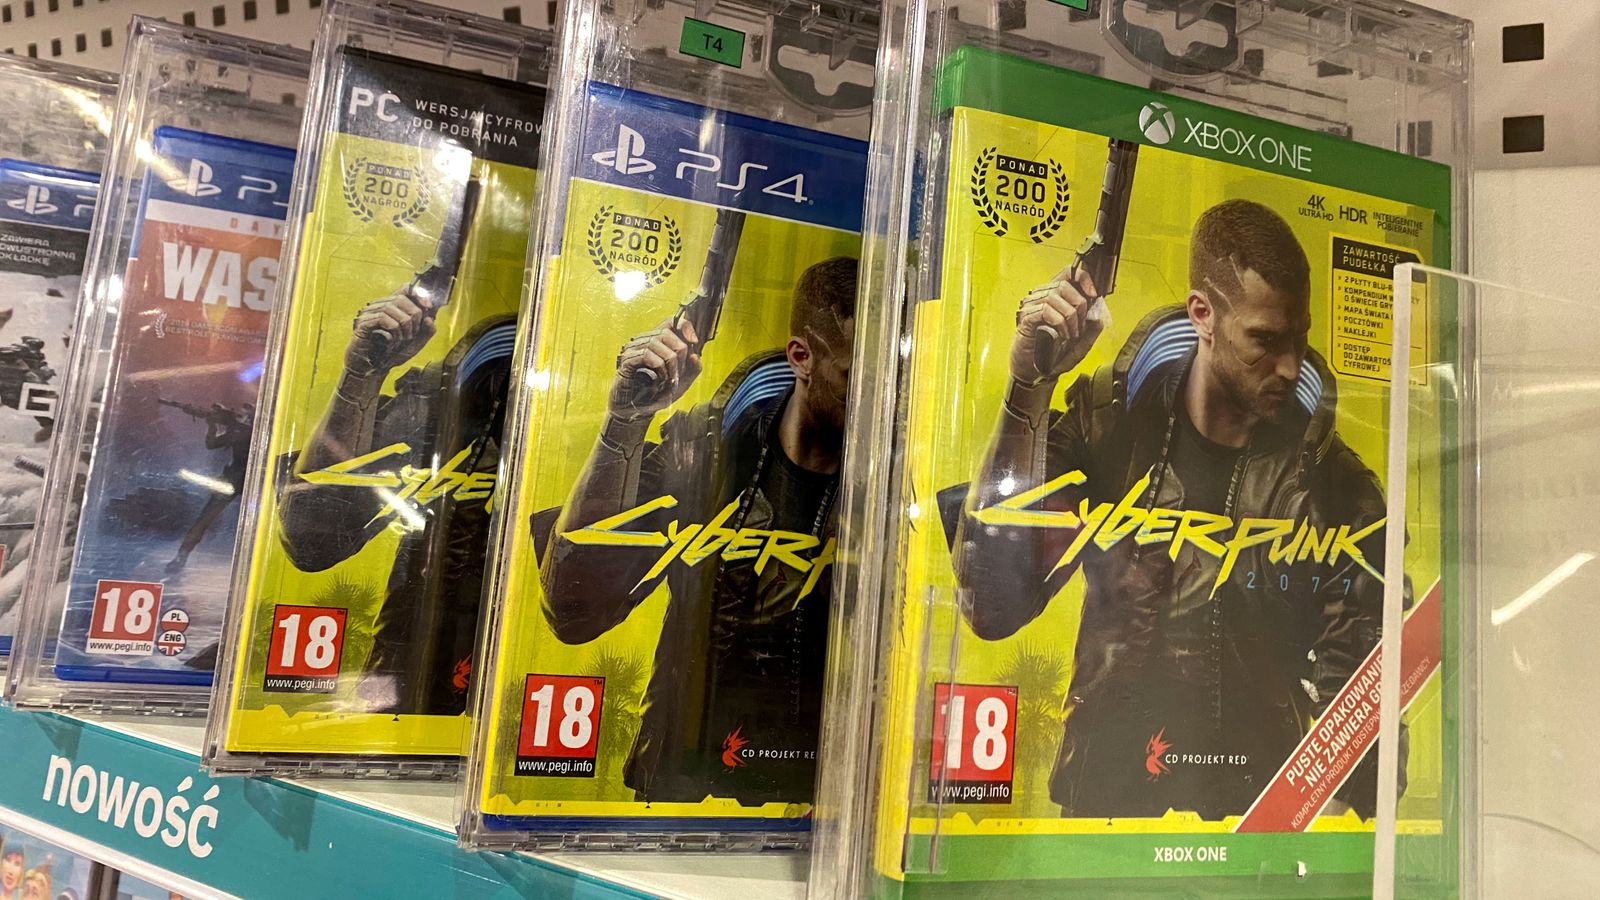 cyberpunk 2077 cd projekt reds game pulled from playstation store by sony as players offered refund